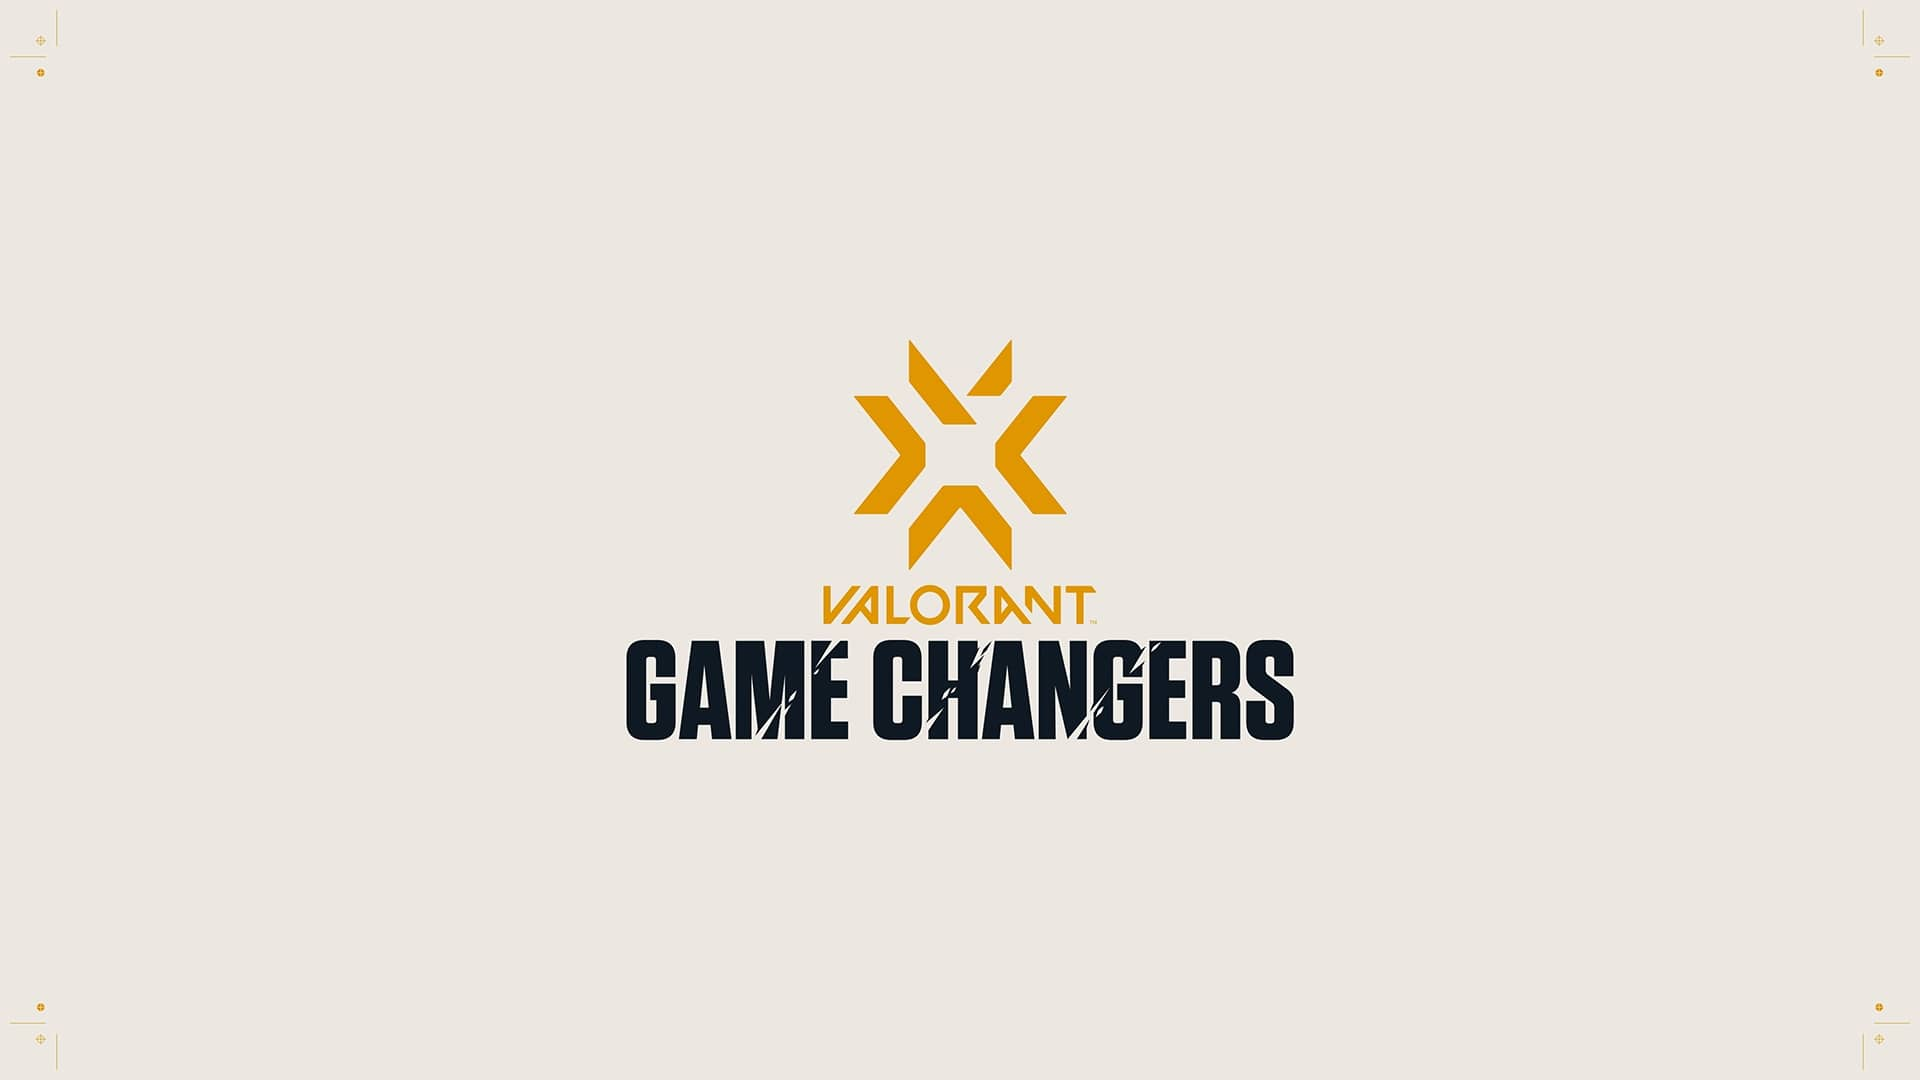 VALORANT Game Changers